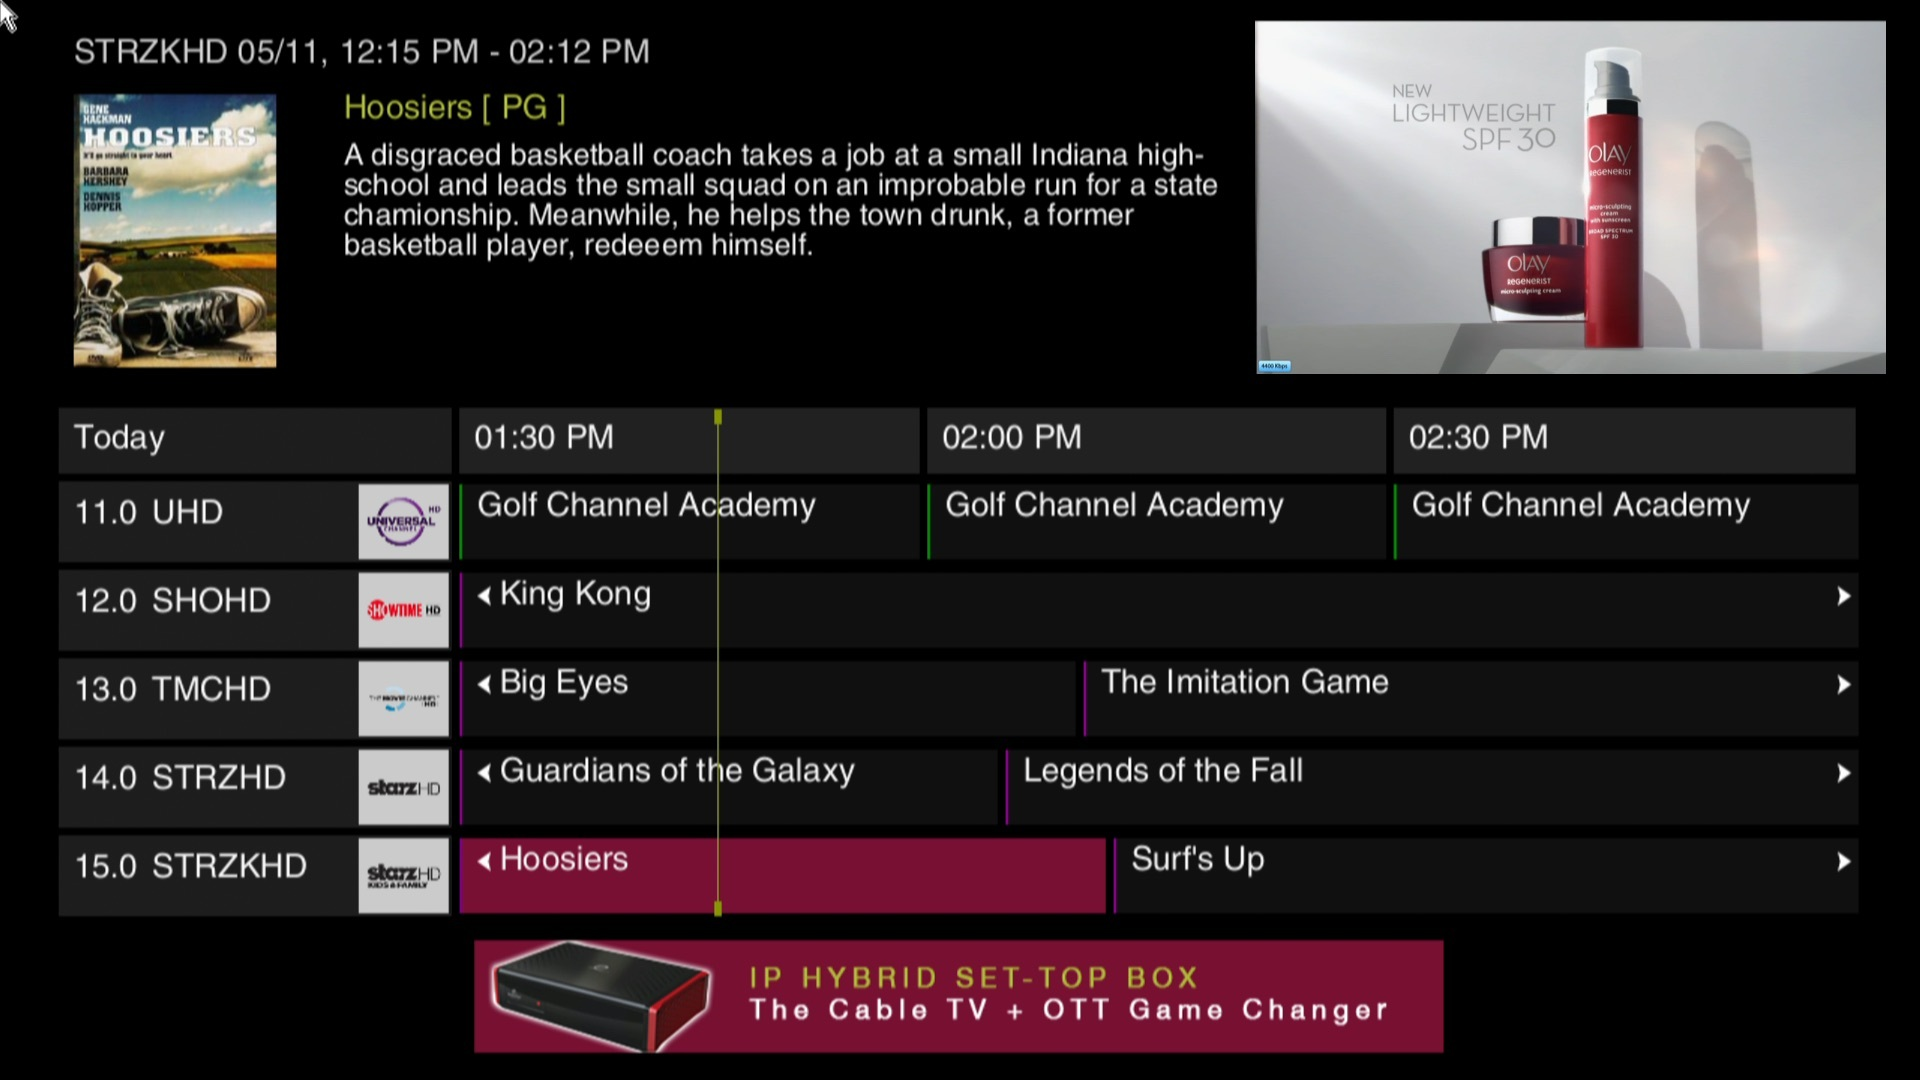 Typical Tivo Wiring Diagram Wire Schematic 1989 Buick Century Diagrams Where Is Headedright Here Avs Forum Home Theater Eguide Screenshot 2451866 Headed Right Herehtml